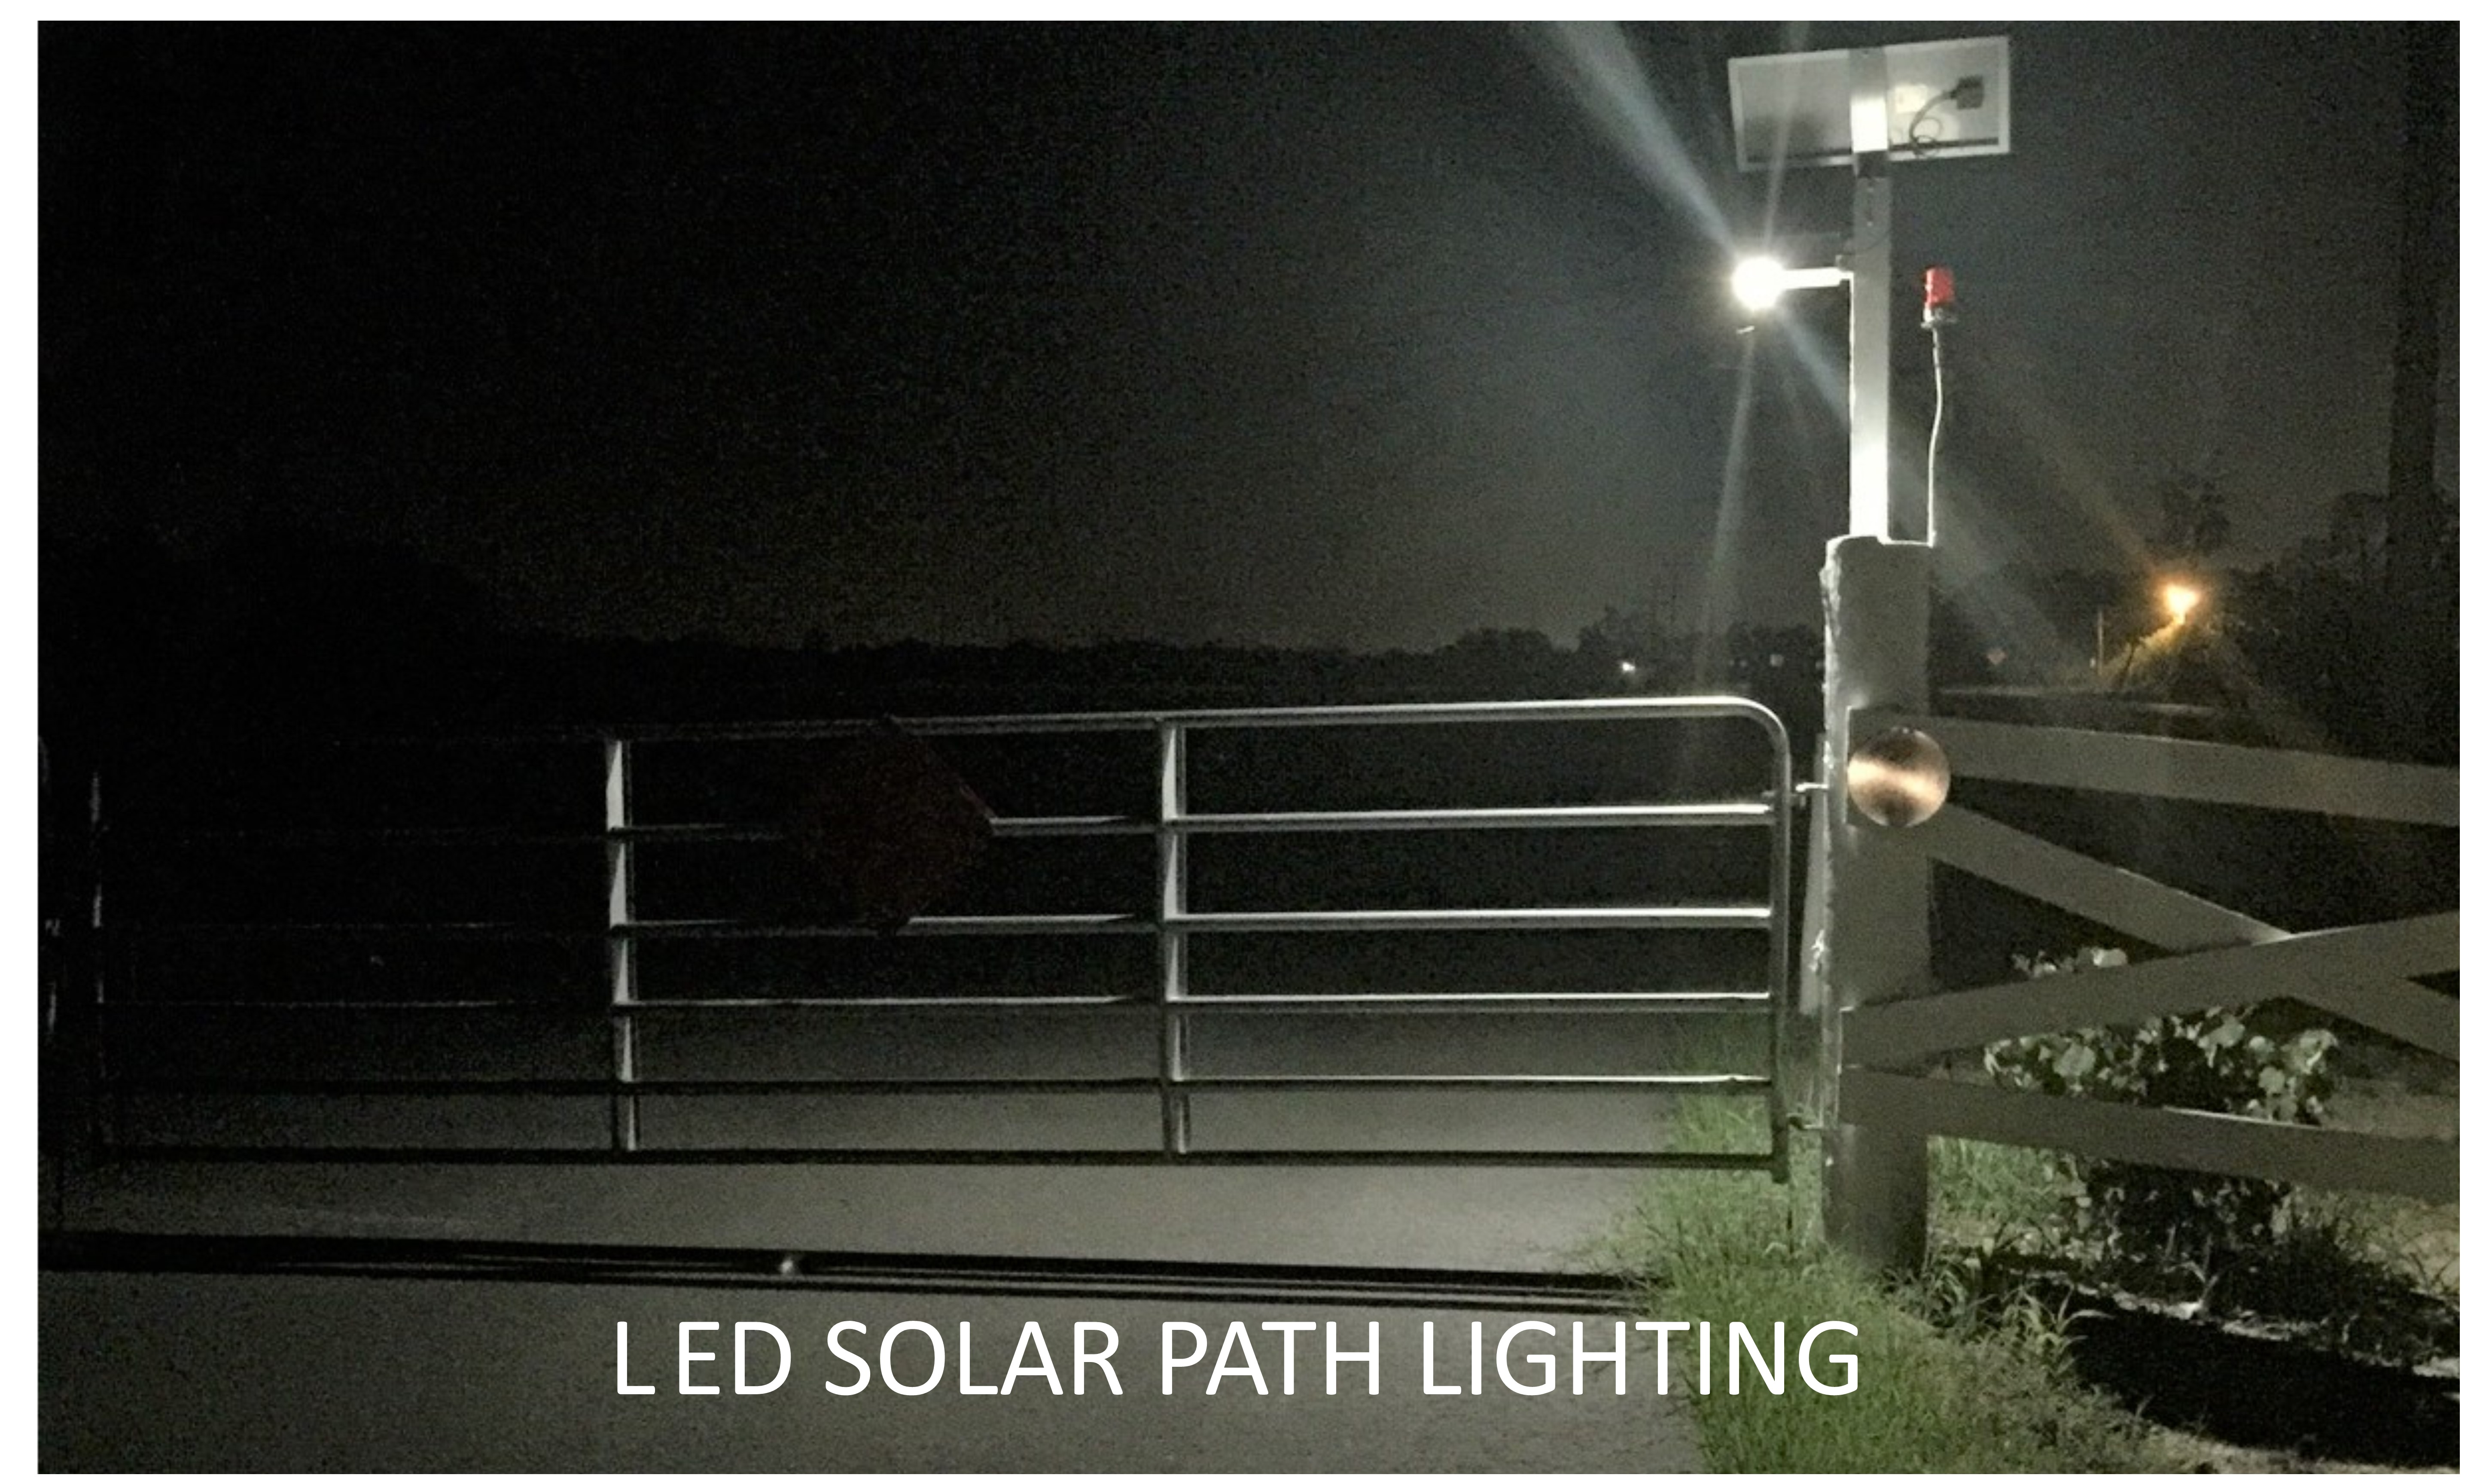 This is a photo of a gated entrance that is lighted by a solar path light.